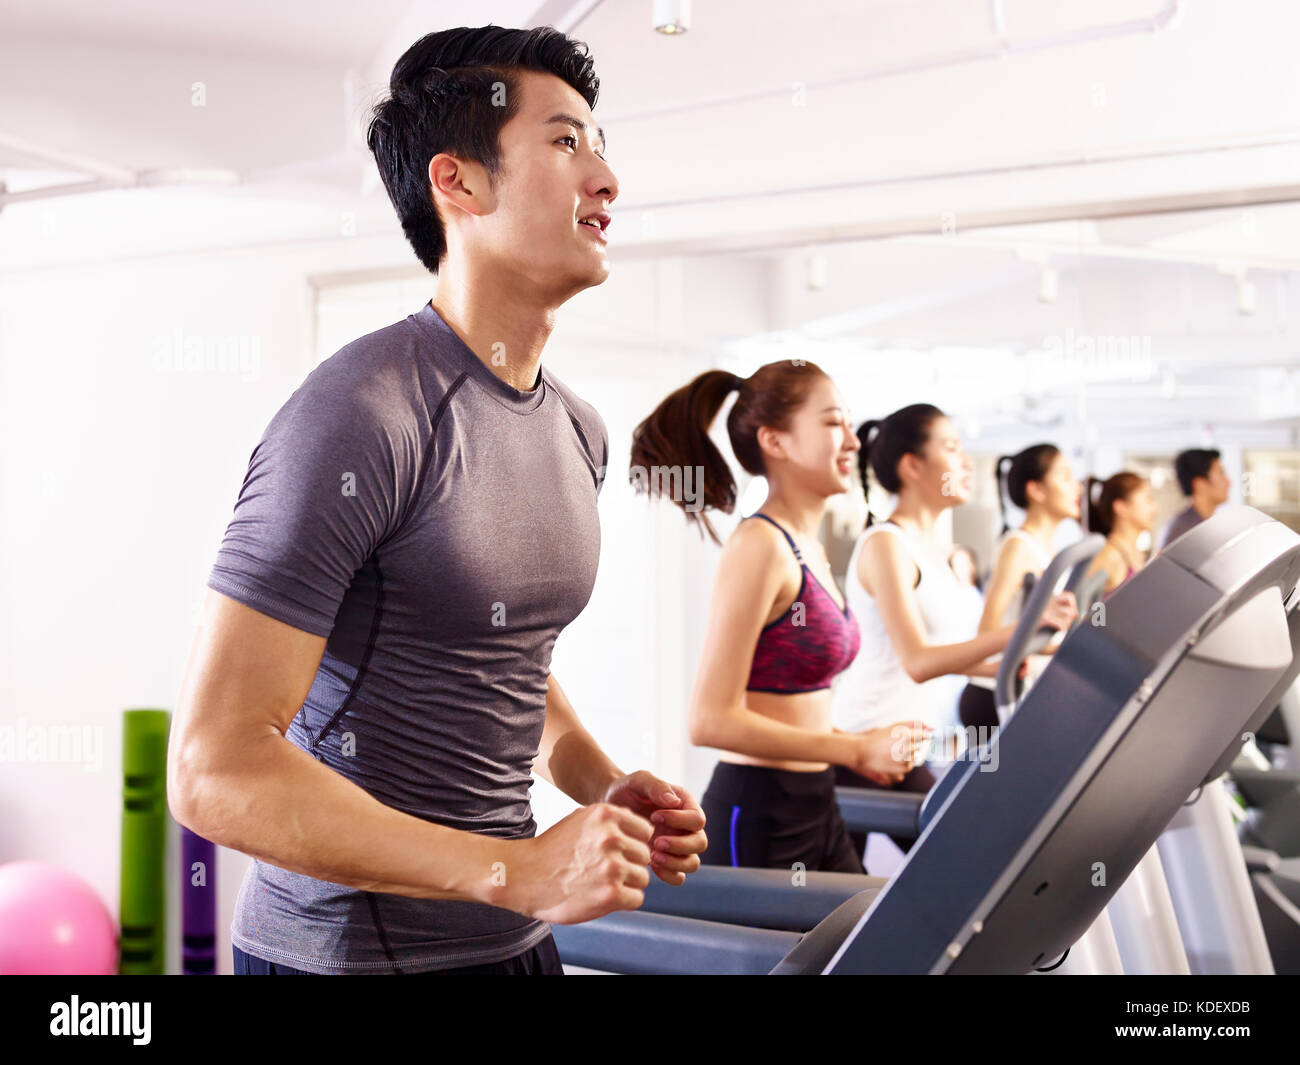 young asian adult working out on treadmill. - Stock Image